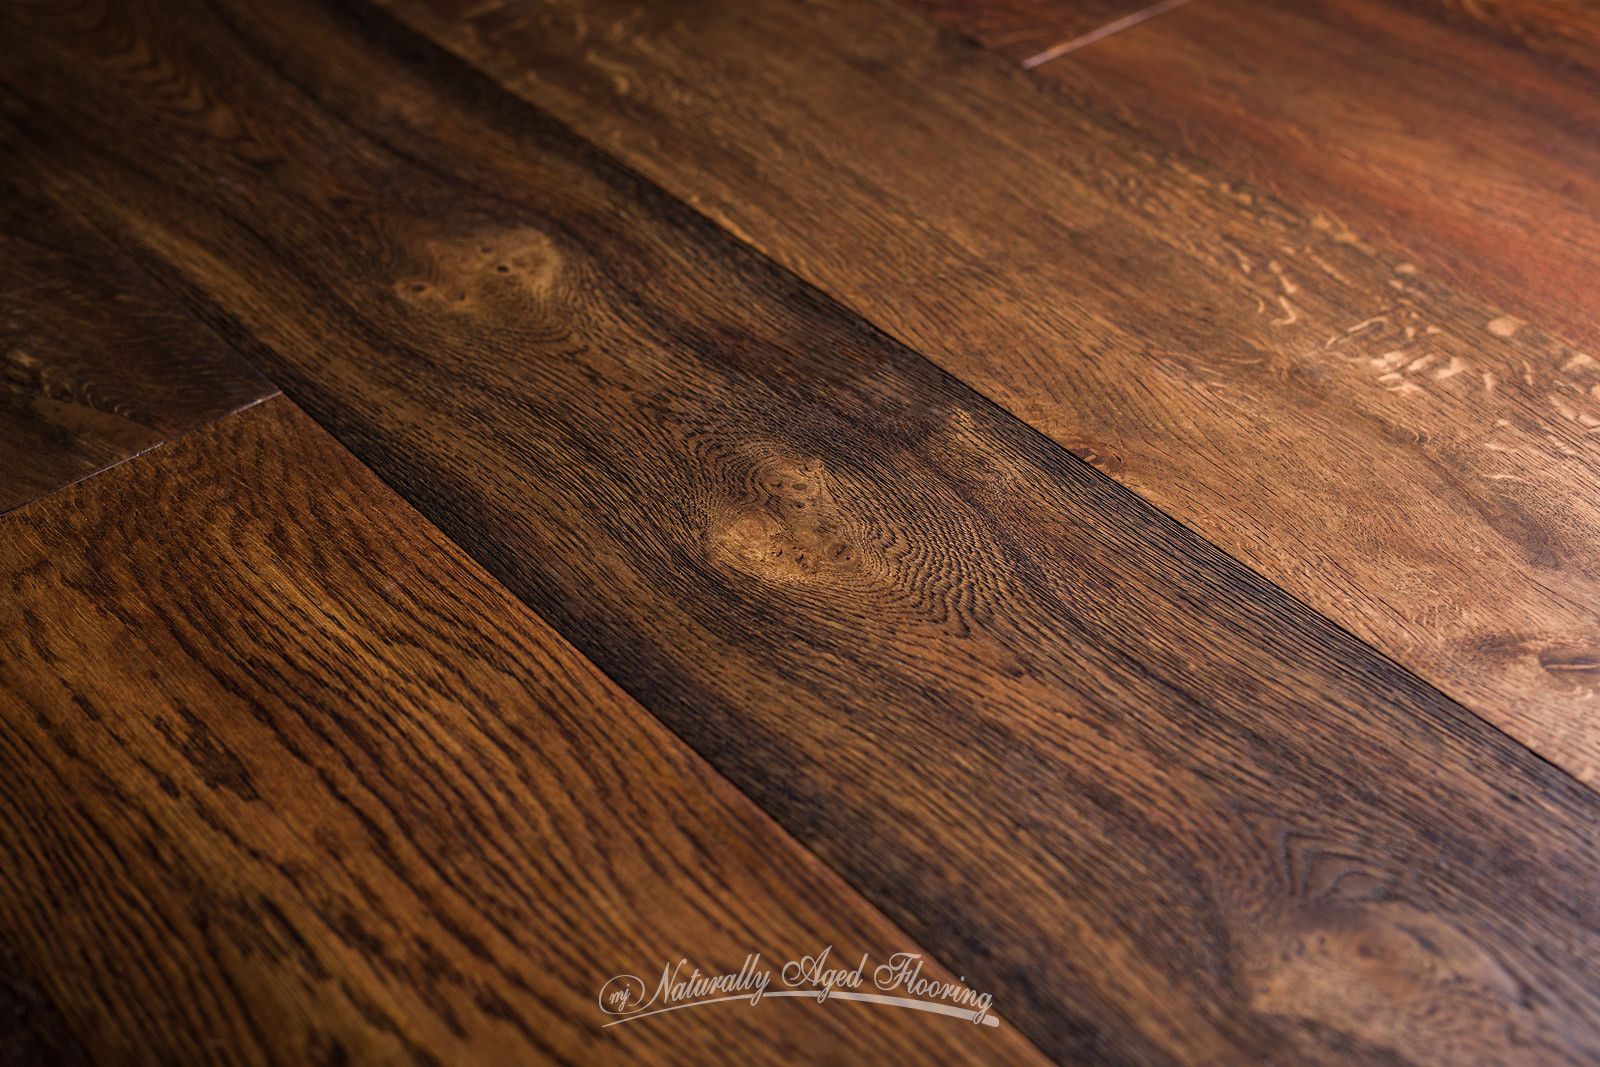 Premier Collection Naturally Aged Flooring